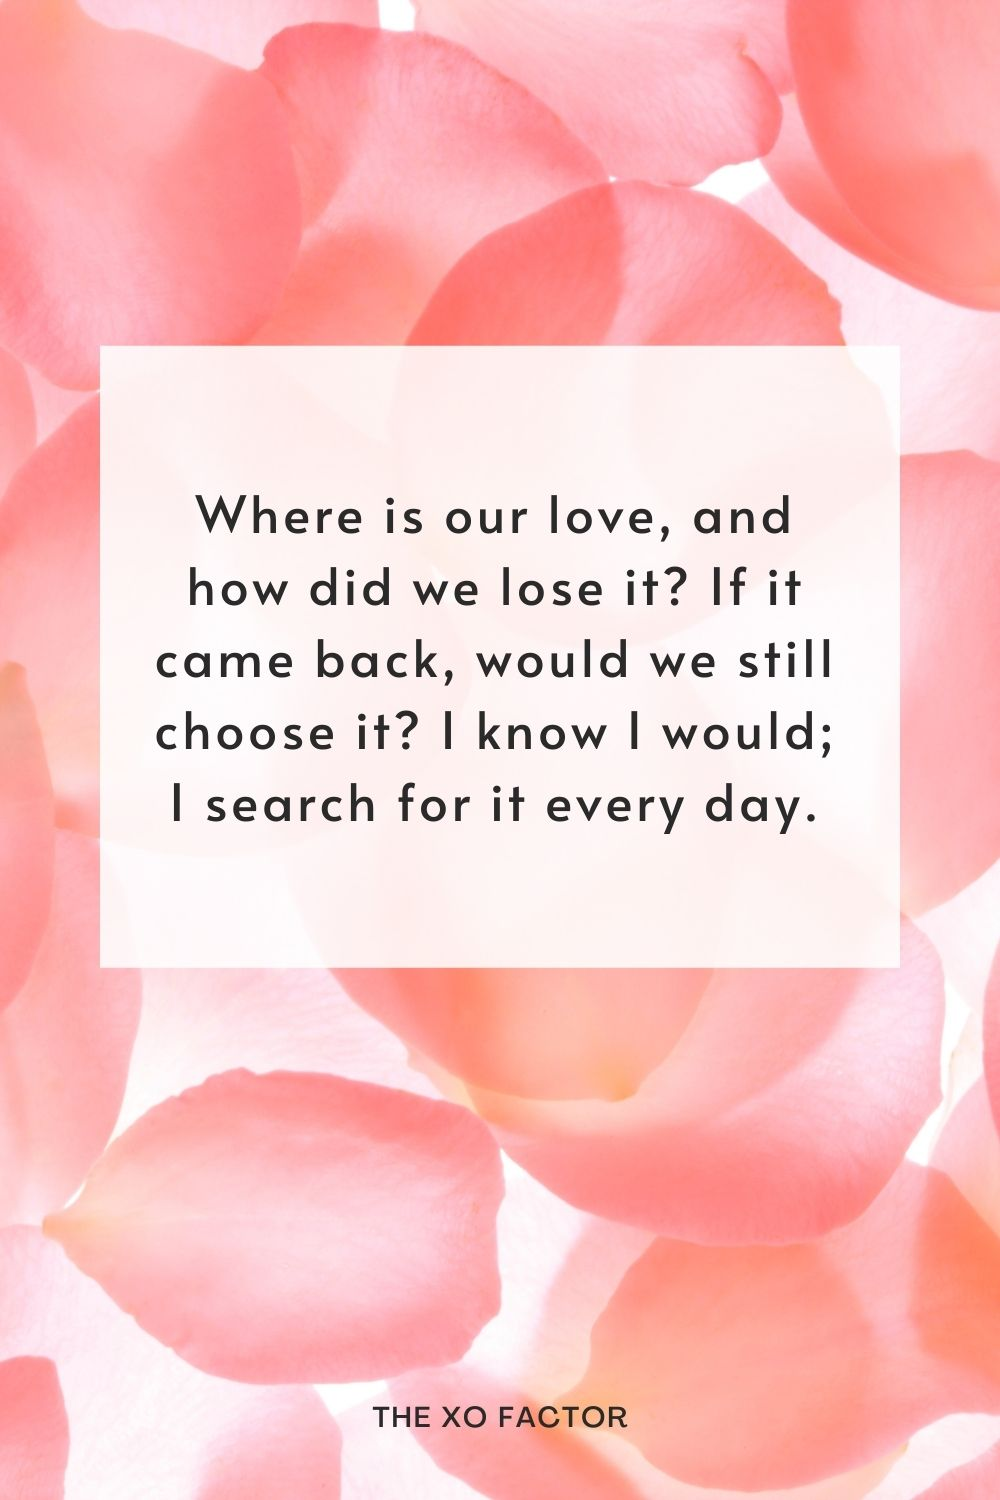 Where is our love, and how did we lose it? If it came back, would we still choose it? I know I would; I search for it every day.